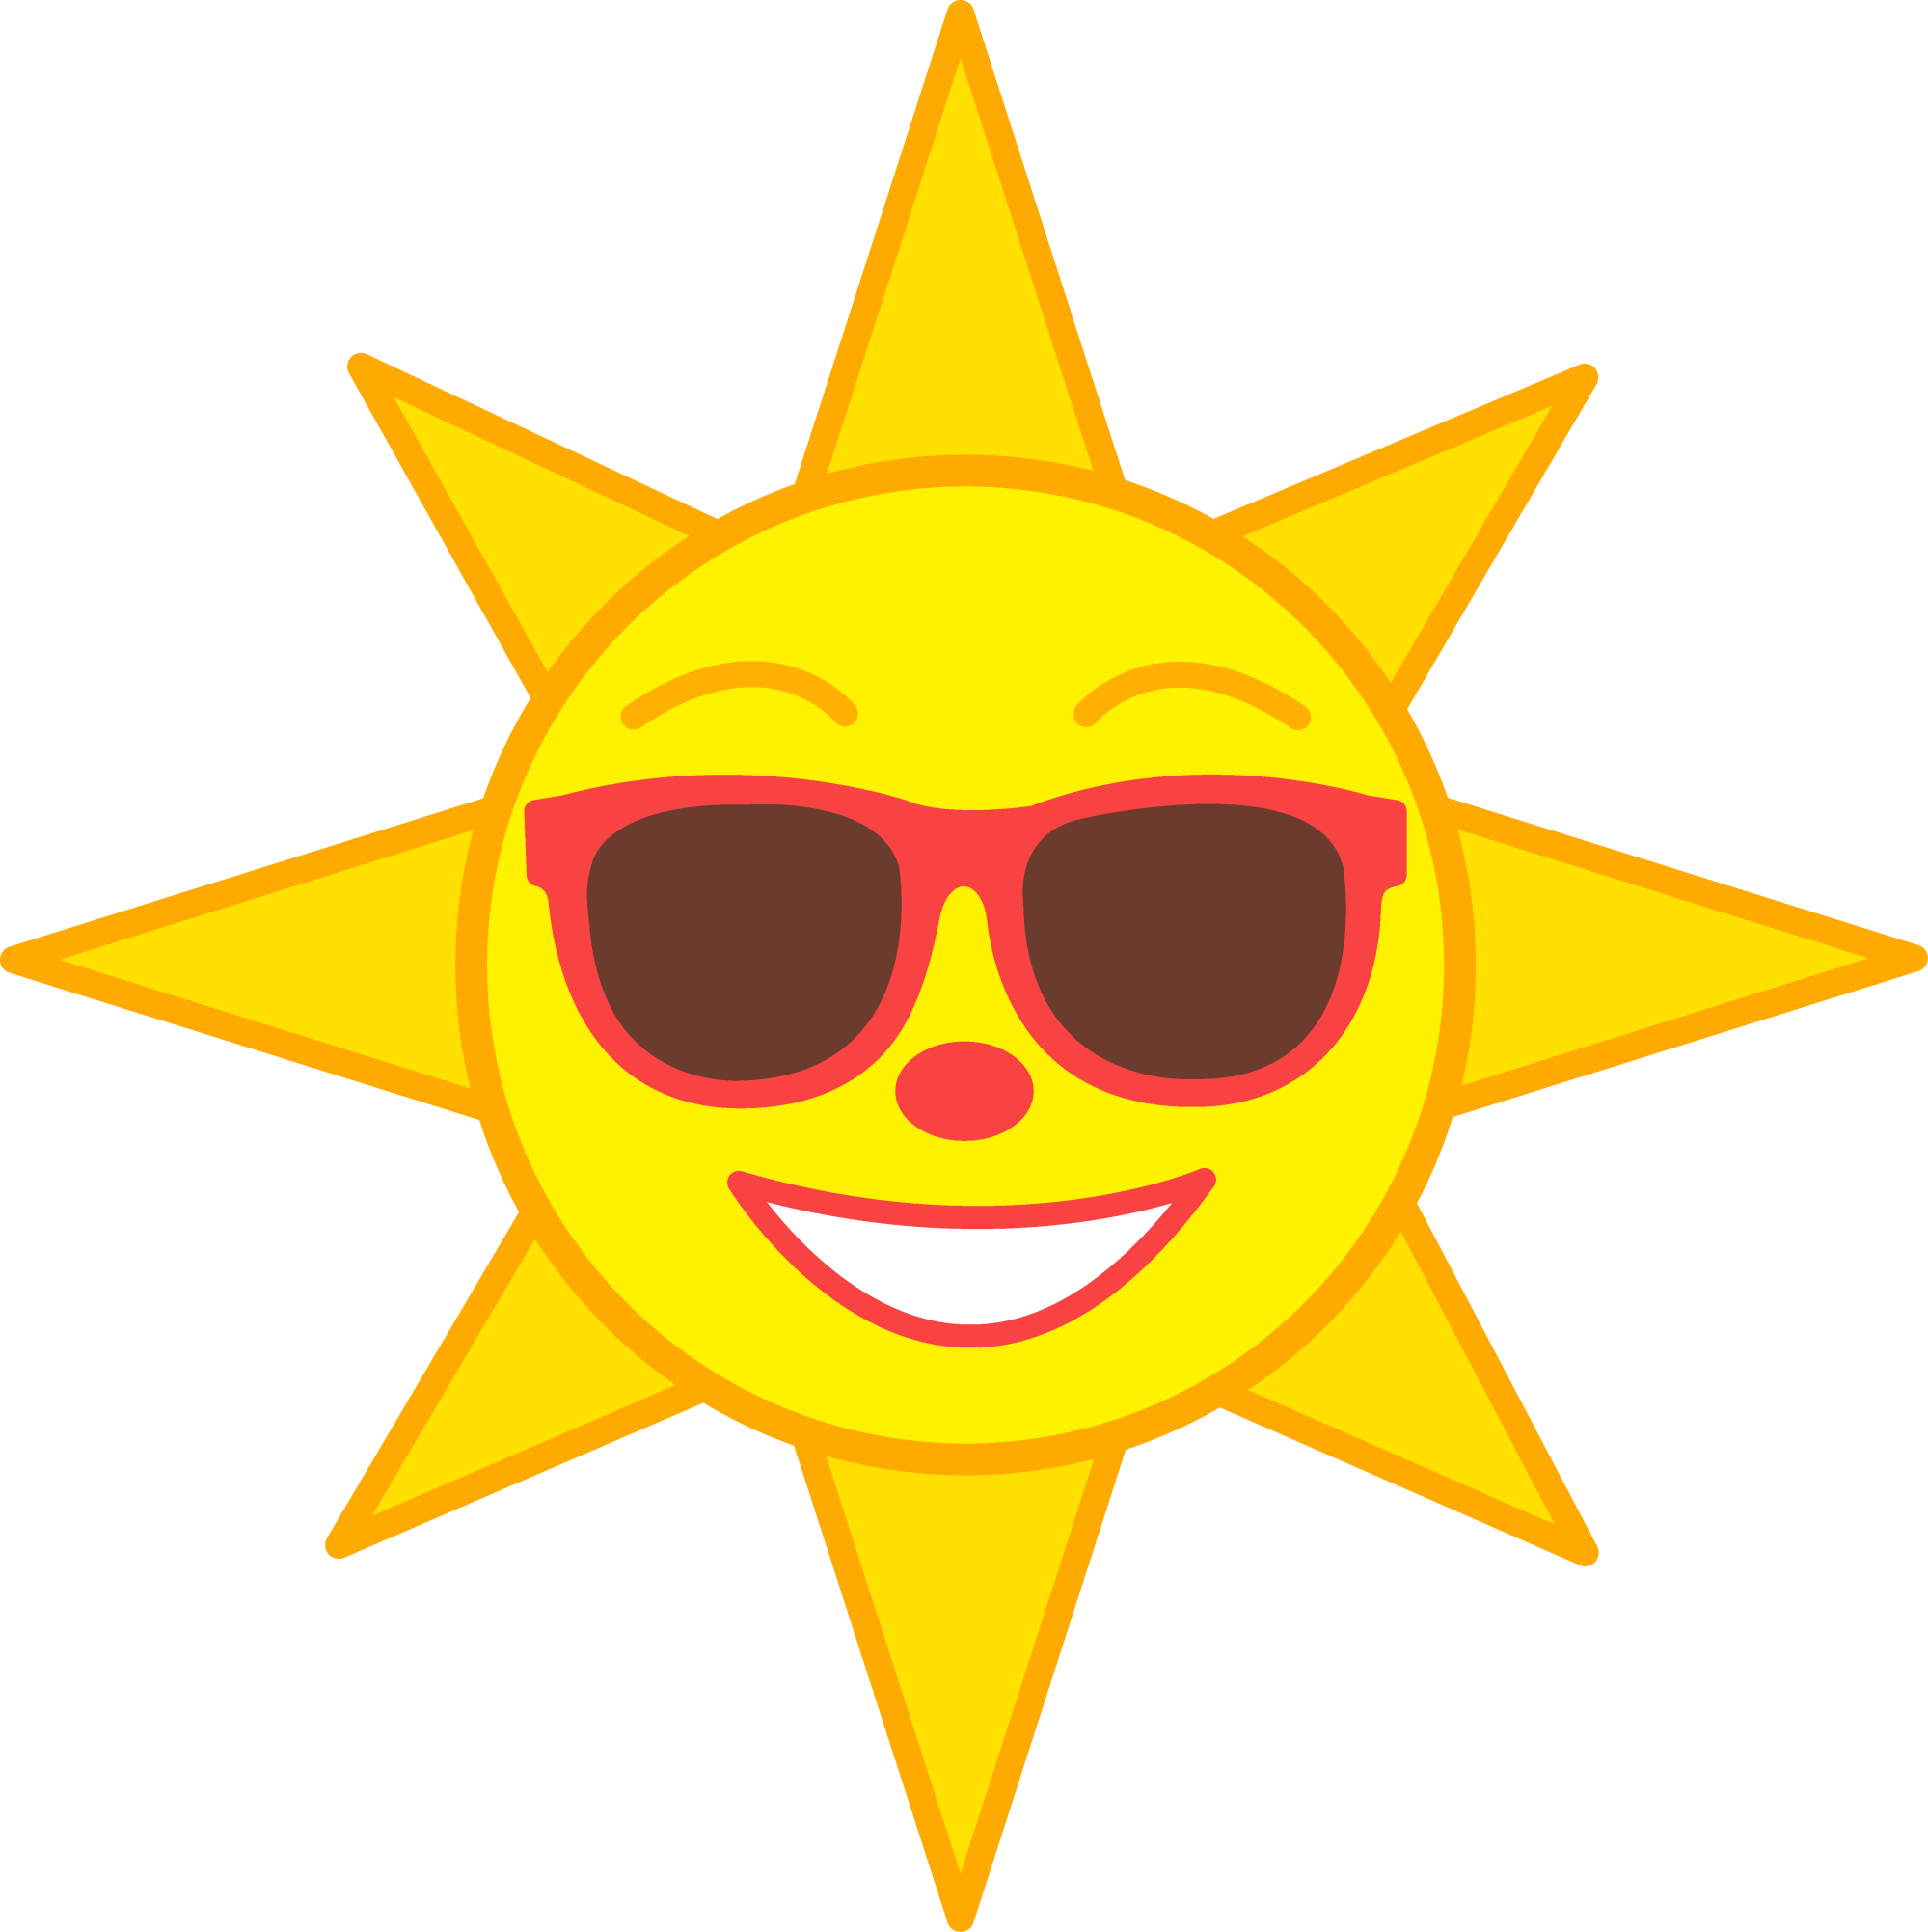 hight resolution of smiling sun clipart royalty free clipart library free clipart images